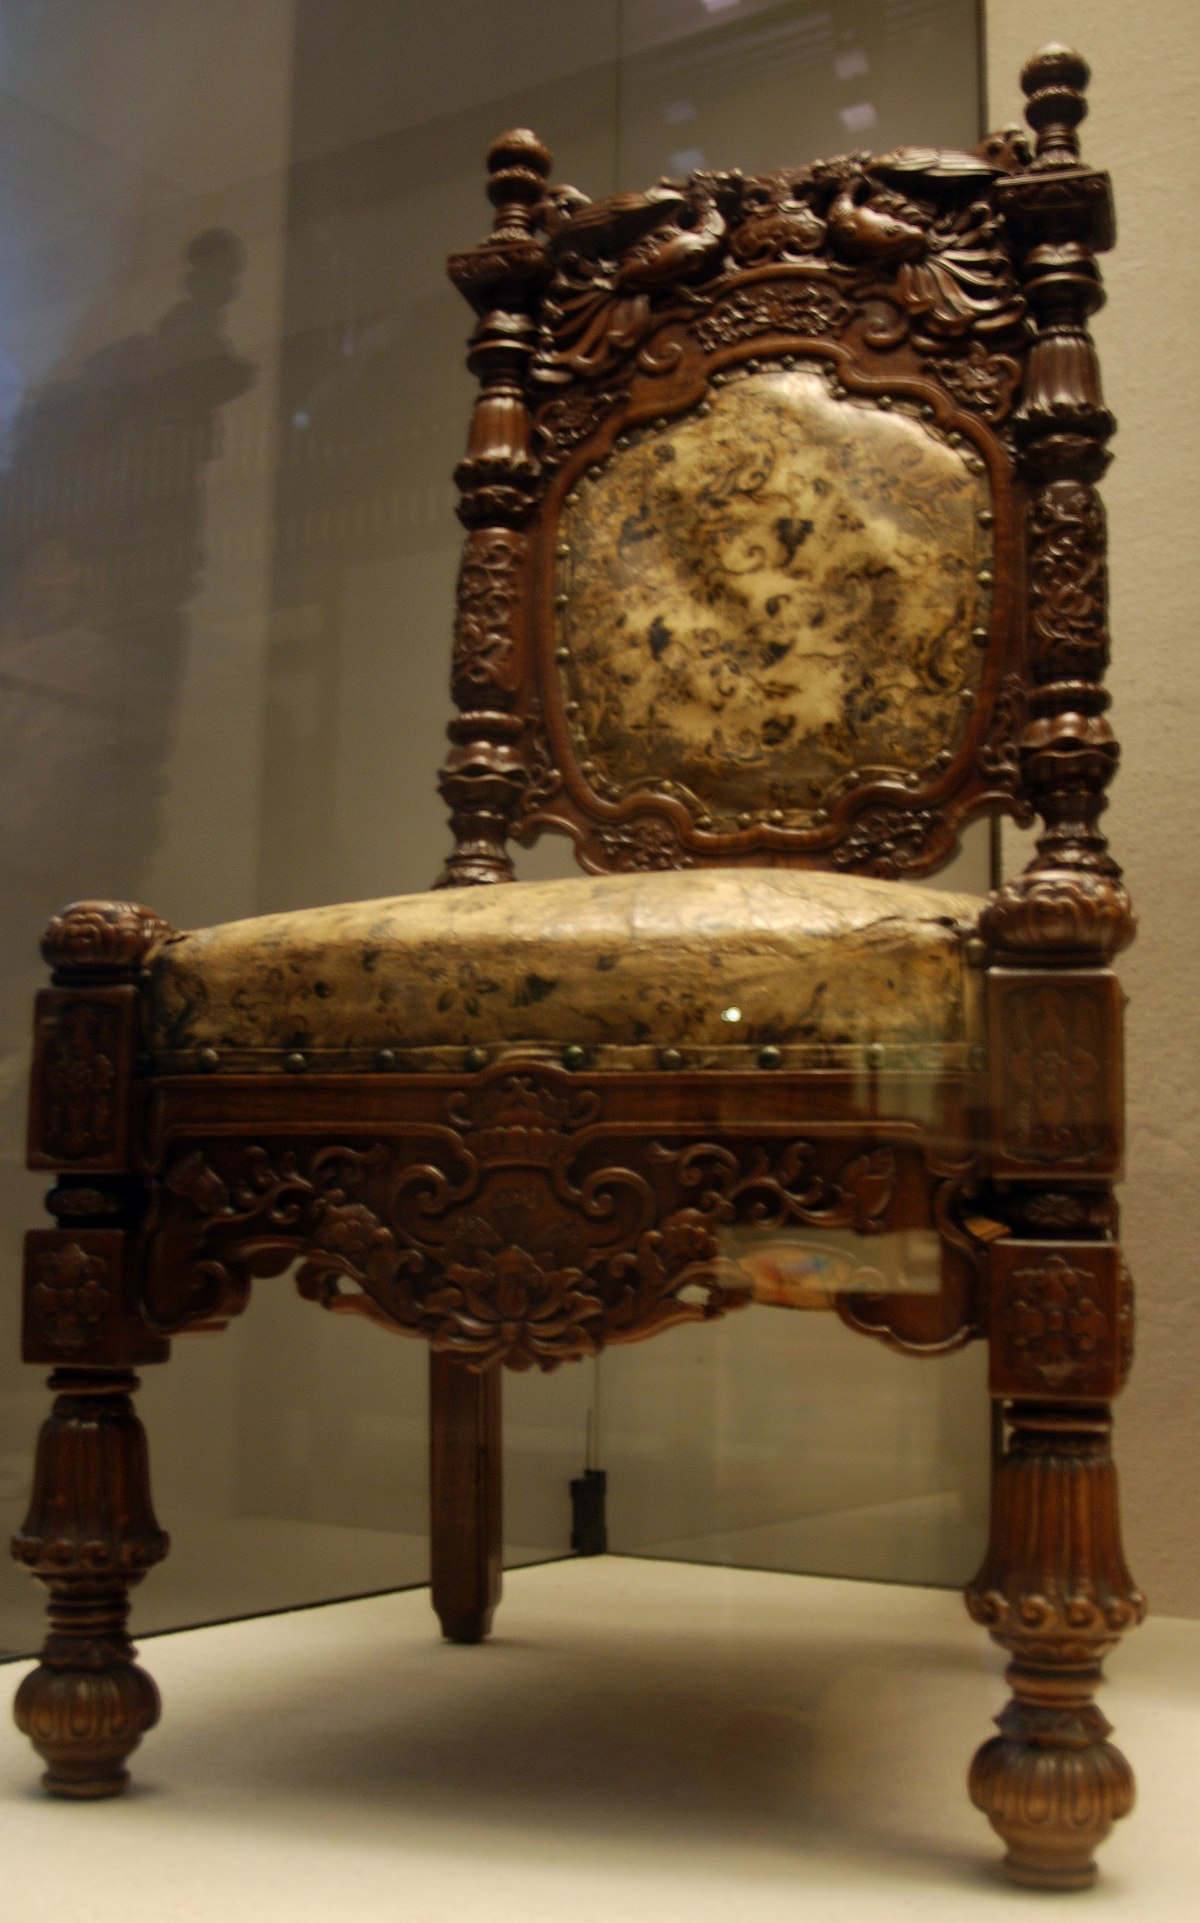 Asian furniture wikipedia for Chinese furniture